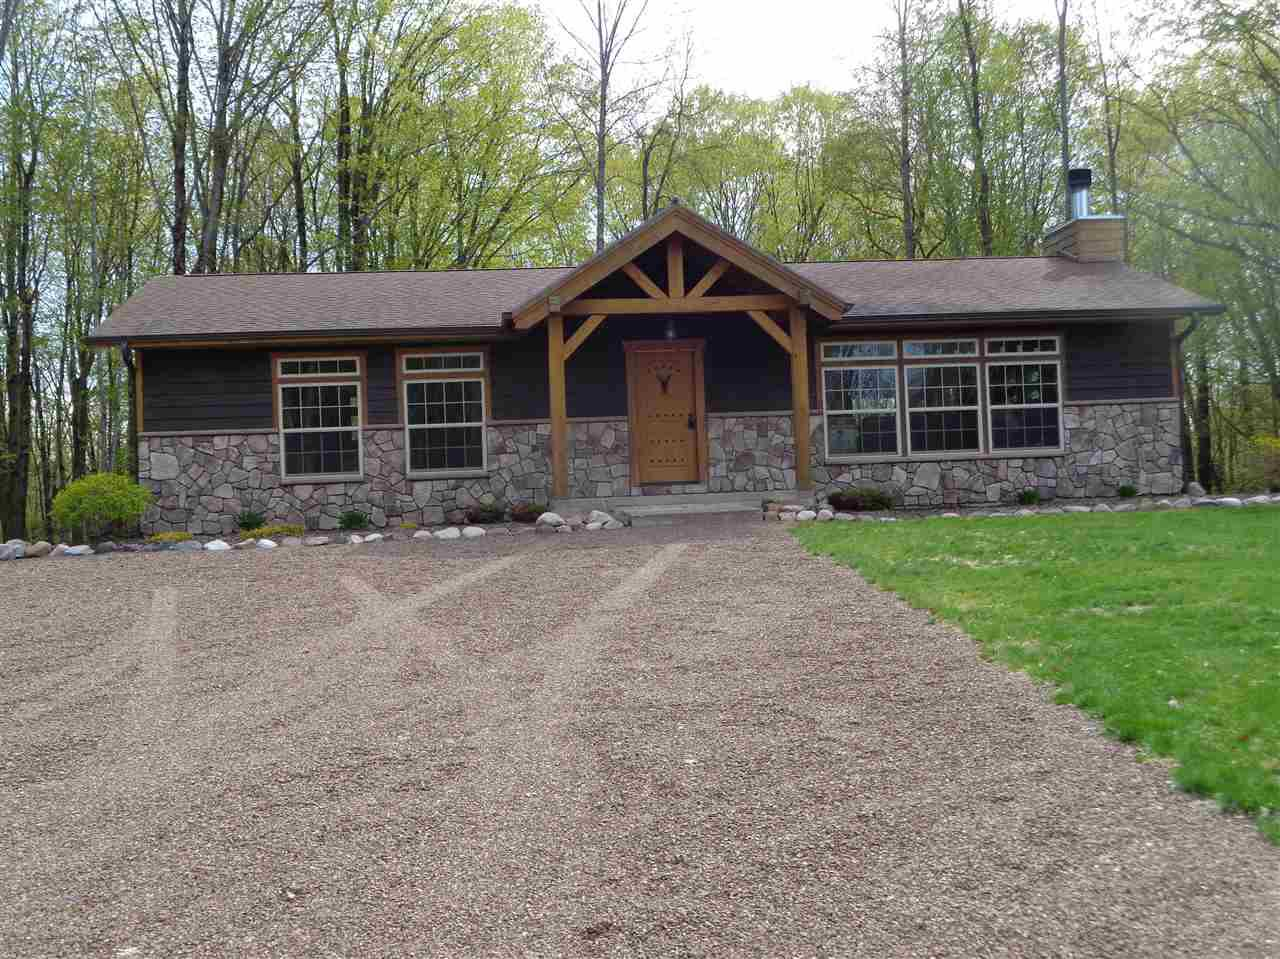 Upscale 3+ bed, 2 bath home or cabin with +/-19.41 wooded acres with a direct border on the National Forest in Perkinstown. Custom kitchen with white ash cabinets, timber frame island and granite countertops. Great room with a wood burning fireplace and vaulted ceilings. Four season room with a bar and access to a deck system. Master suite with a 3/4 bath and double sinks. Main floor laundry room and full bath. Full finished basement with a family room, rec room, bedroom and bonus room.,Professionally landscaped yard, campfire pit and large parking area. Cedar siding, conventional septic, drilled well, forced air lp furnace and central air. Heated 64x40 metal shed built in 2017 with 14' ceilings and 3 overhead doors. Private location near the end of a dead end road and across the road from Kathryn Lake. Stove, refrigerator, microwave, washer, dryer, timber frame island, bar and bar stools are included in the sale price. Furnishings and personal property are negotiable.